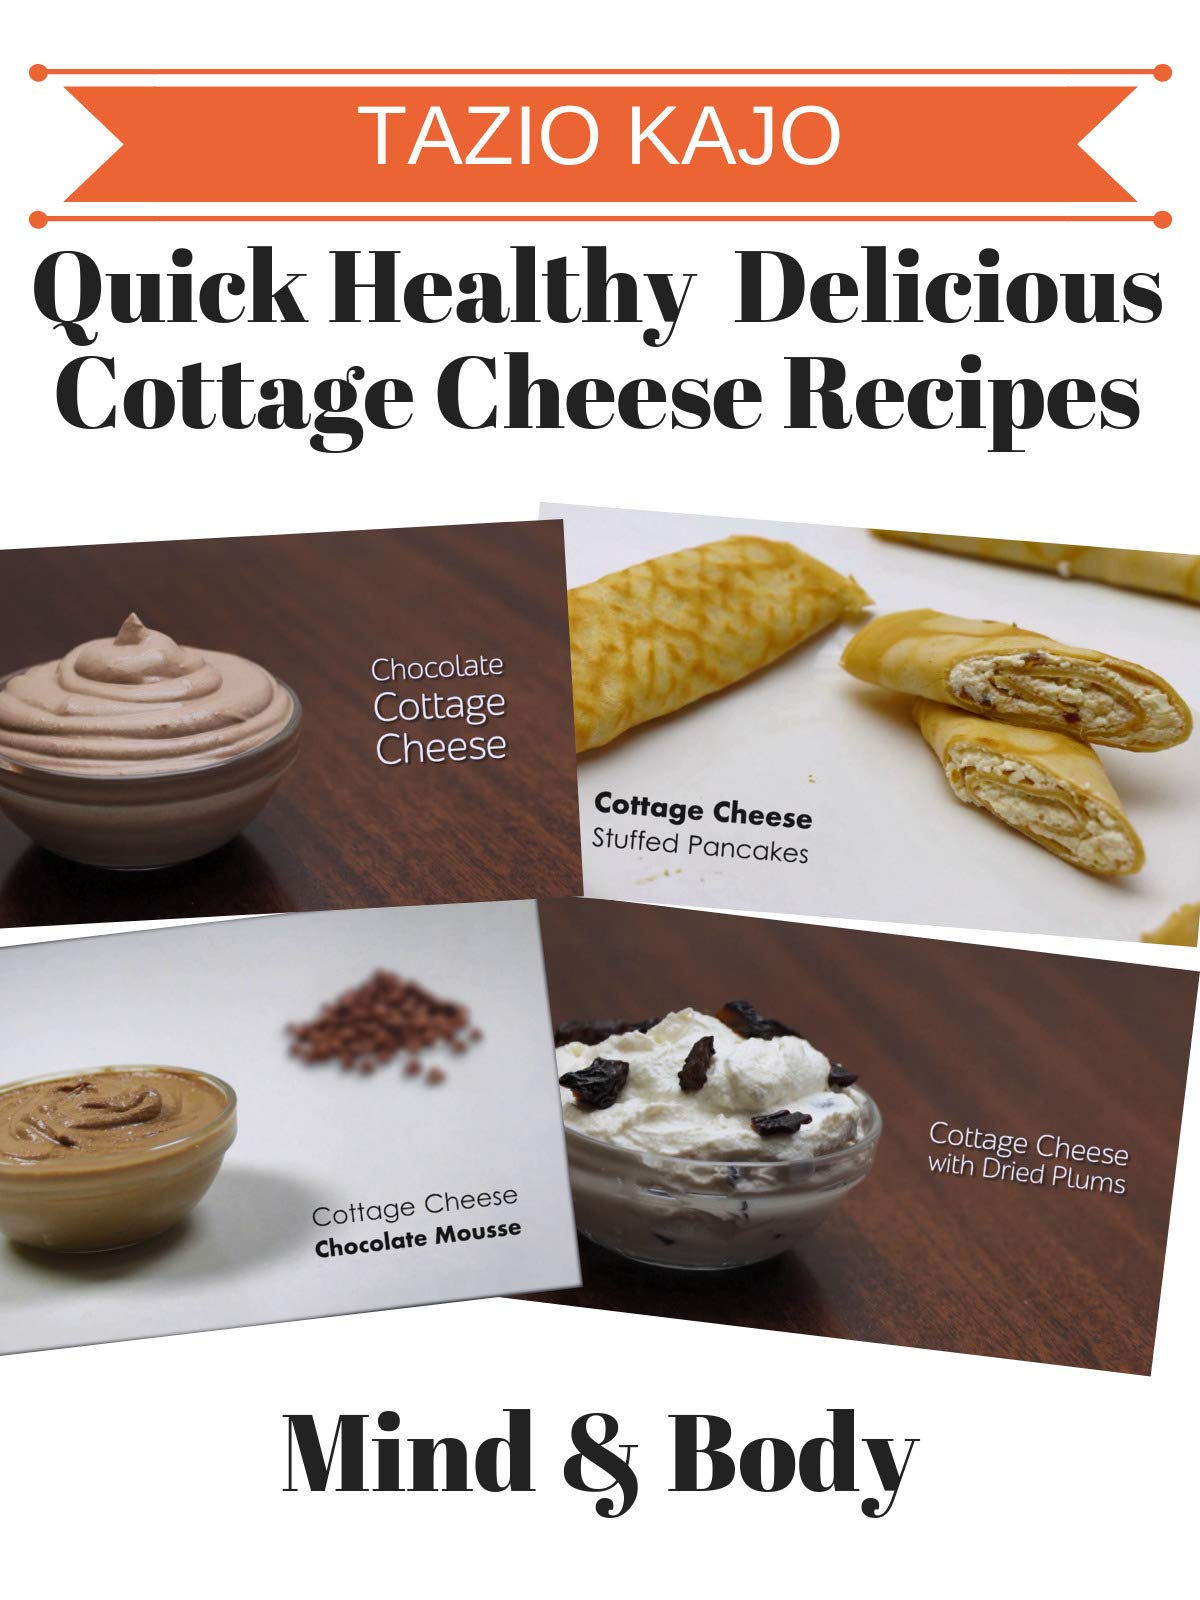 Quick Healthy & Delicious Cottage Cheese Recipes